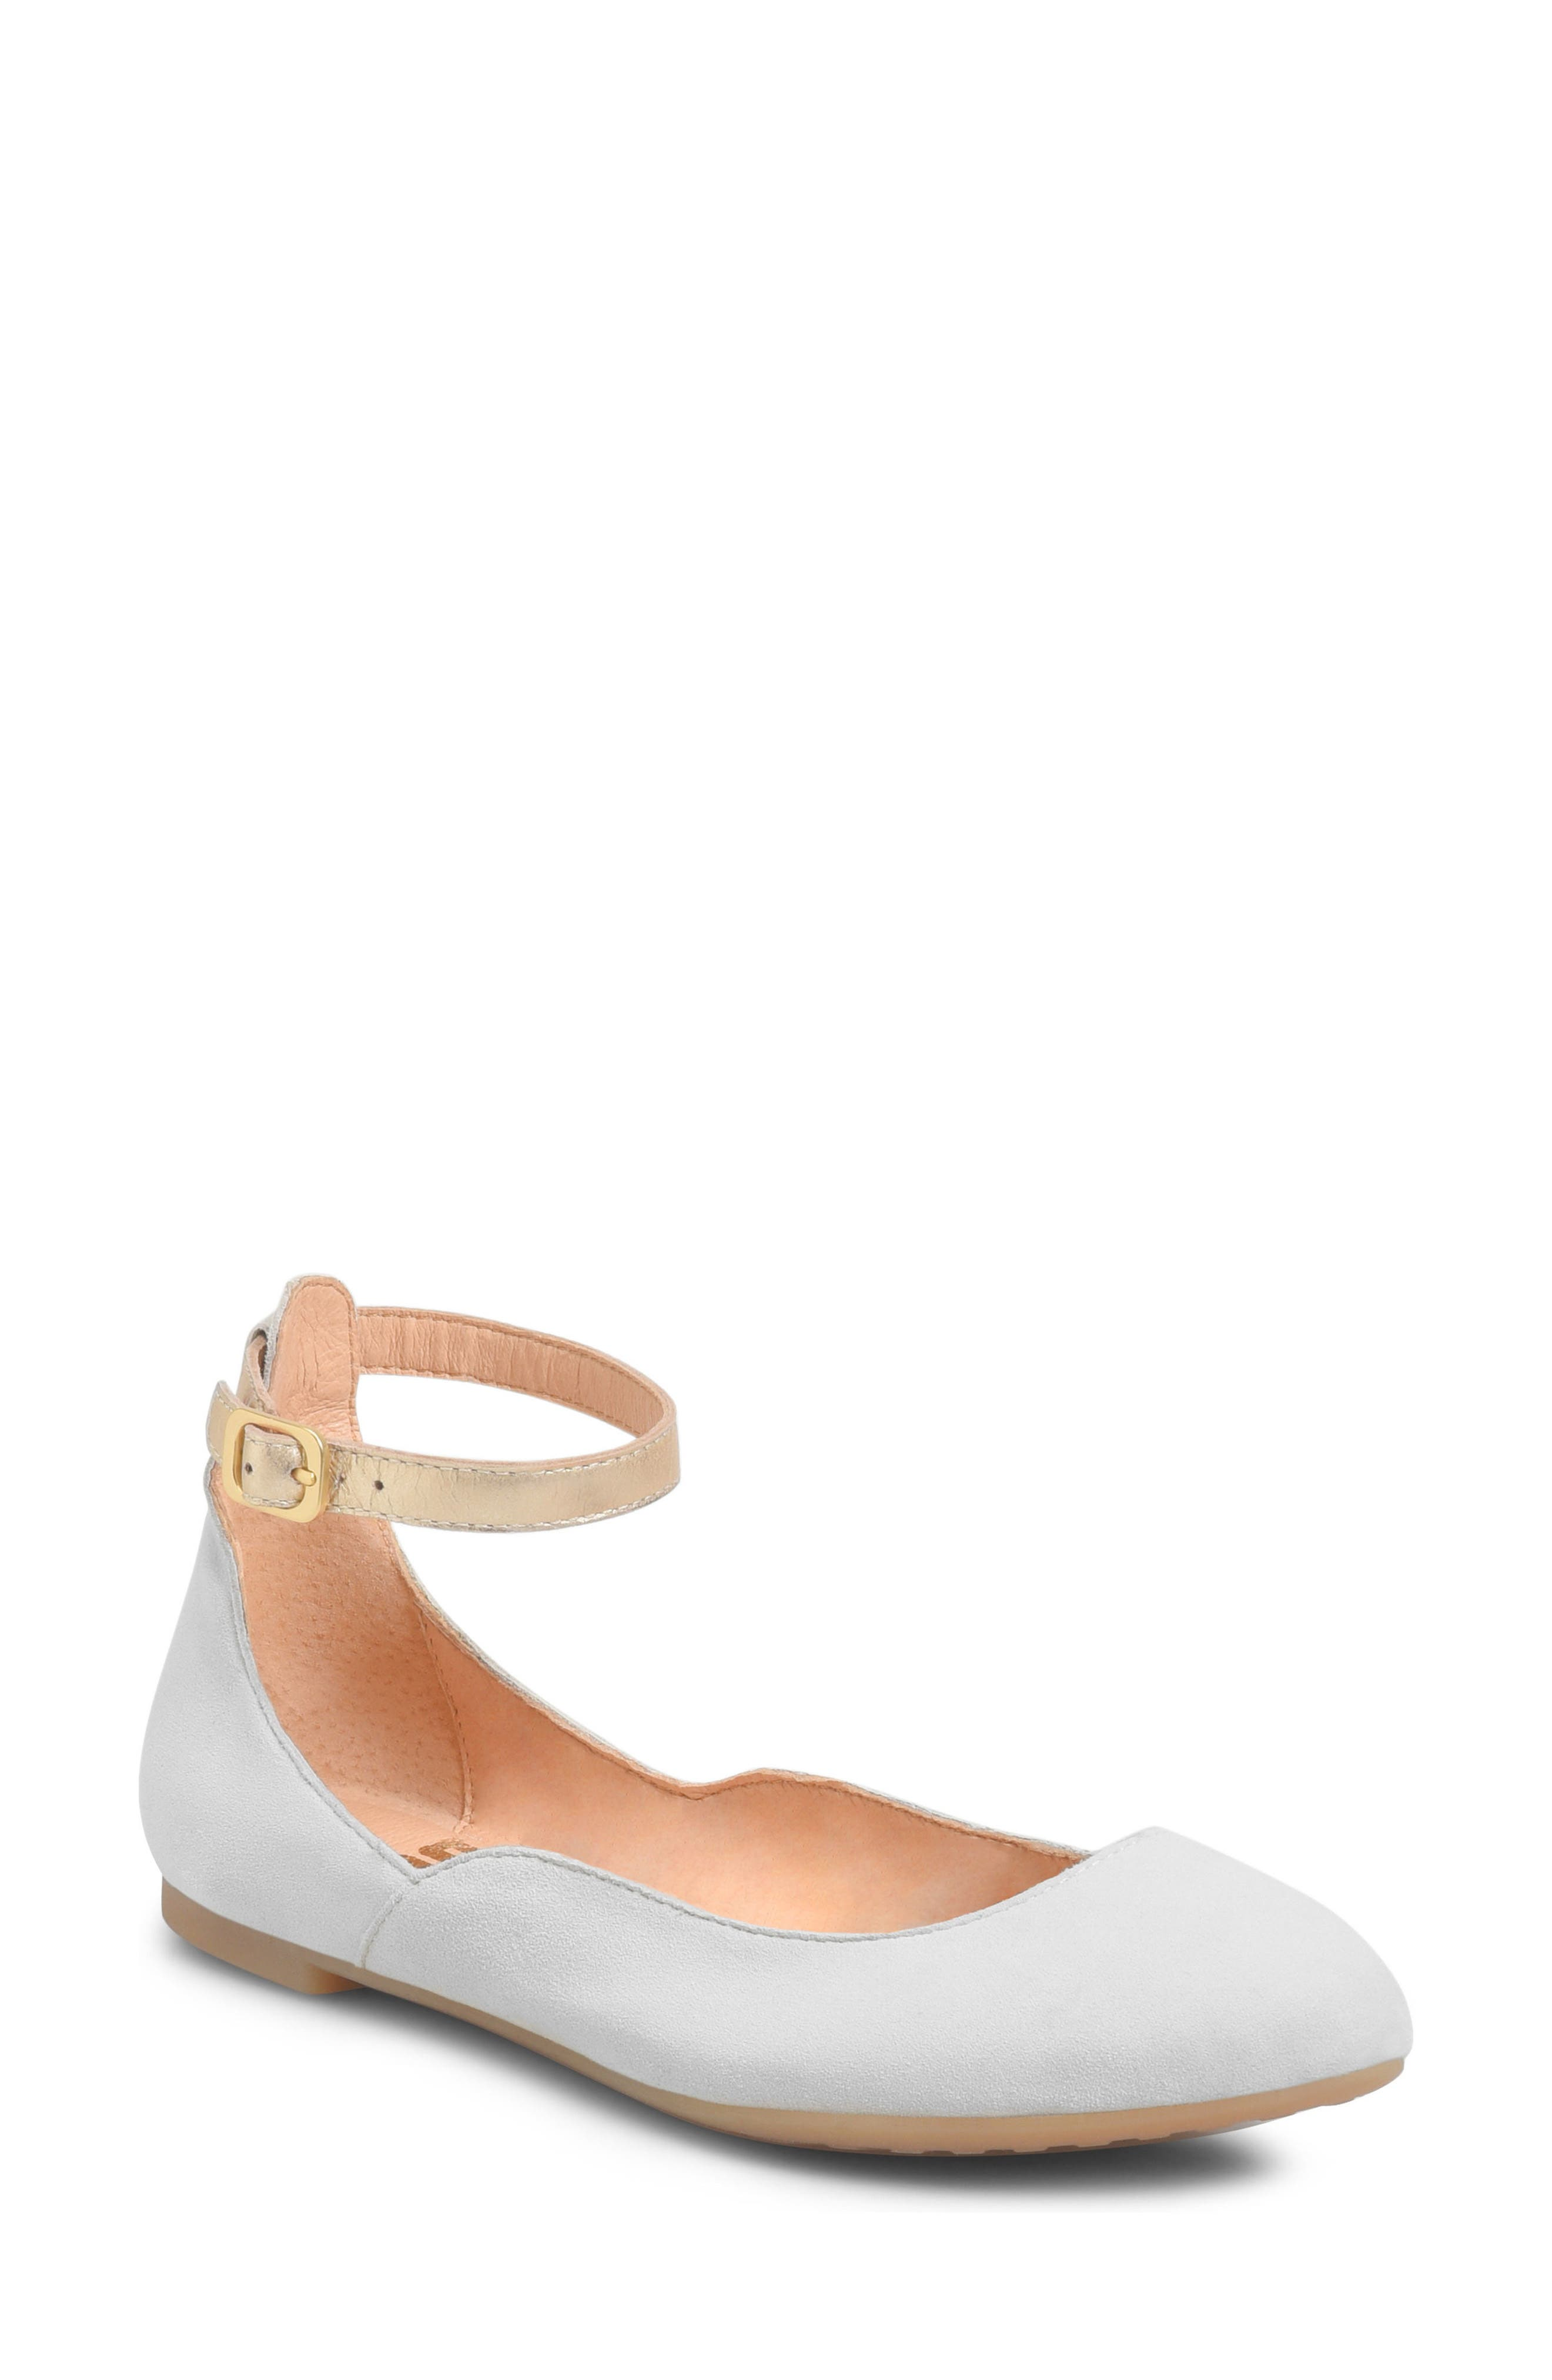 Luchia Ankle Strap Flat,                         Main,                         color, Light Grey/ Gold Leather